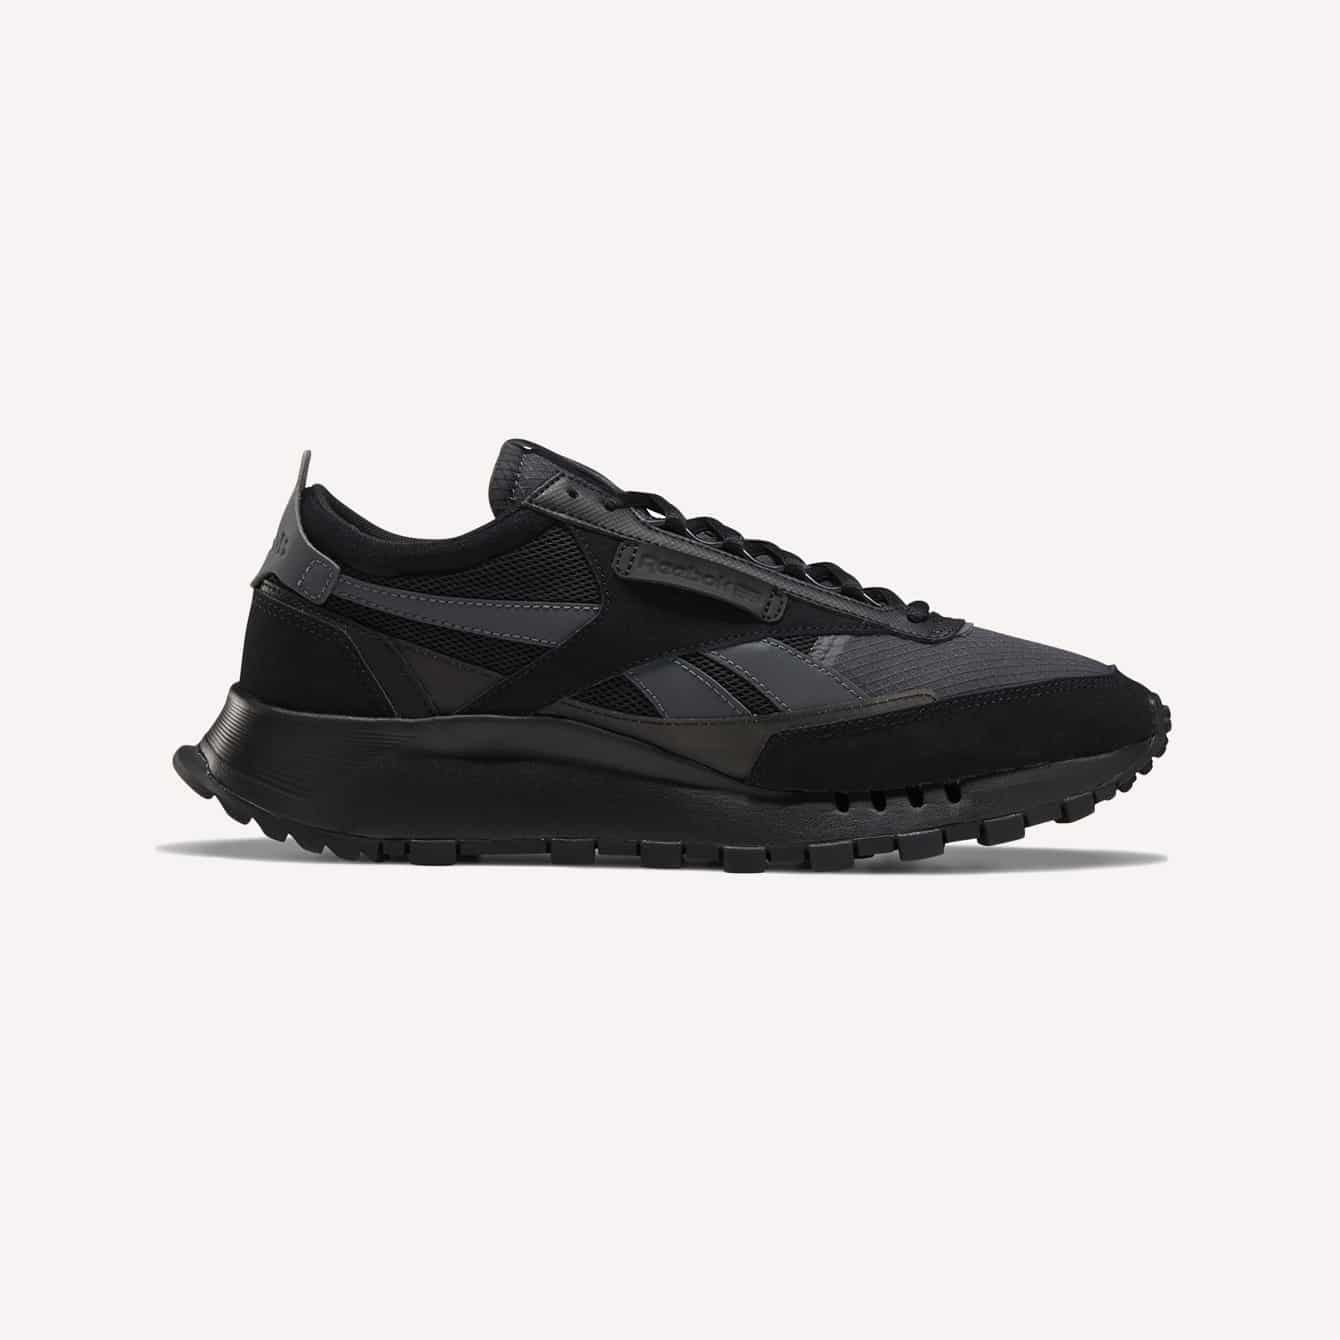 Reebok Classic Leather Legacy Shoes Black Sneakers